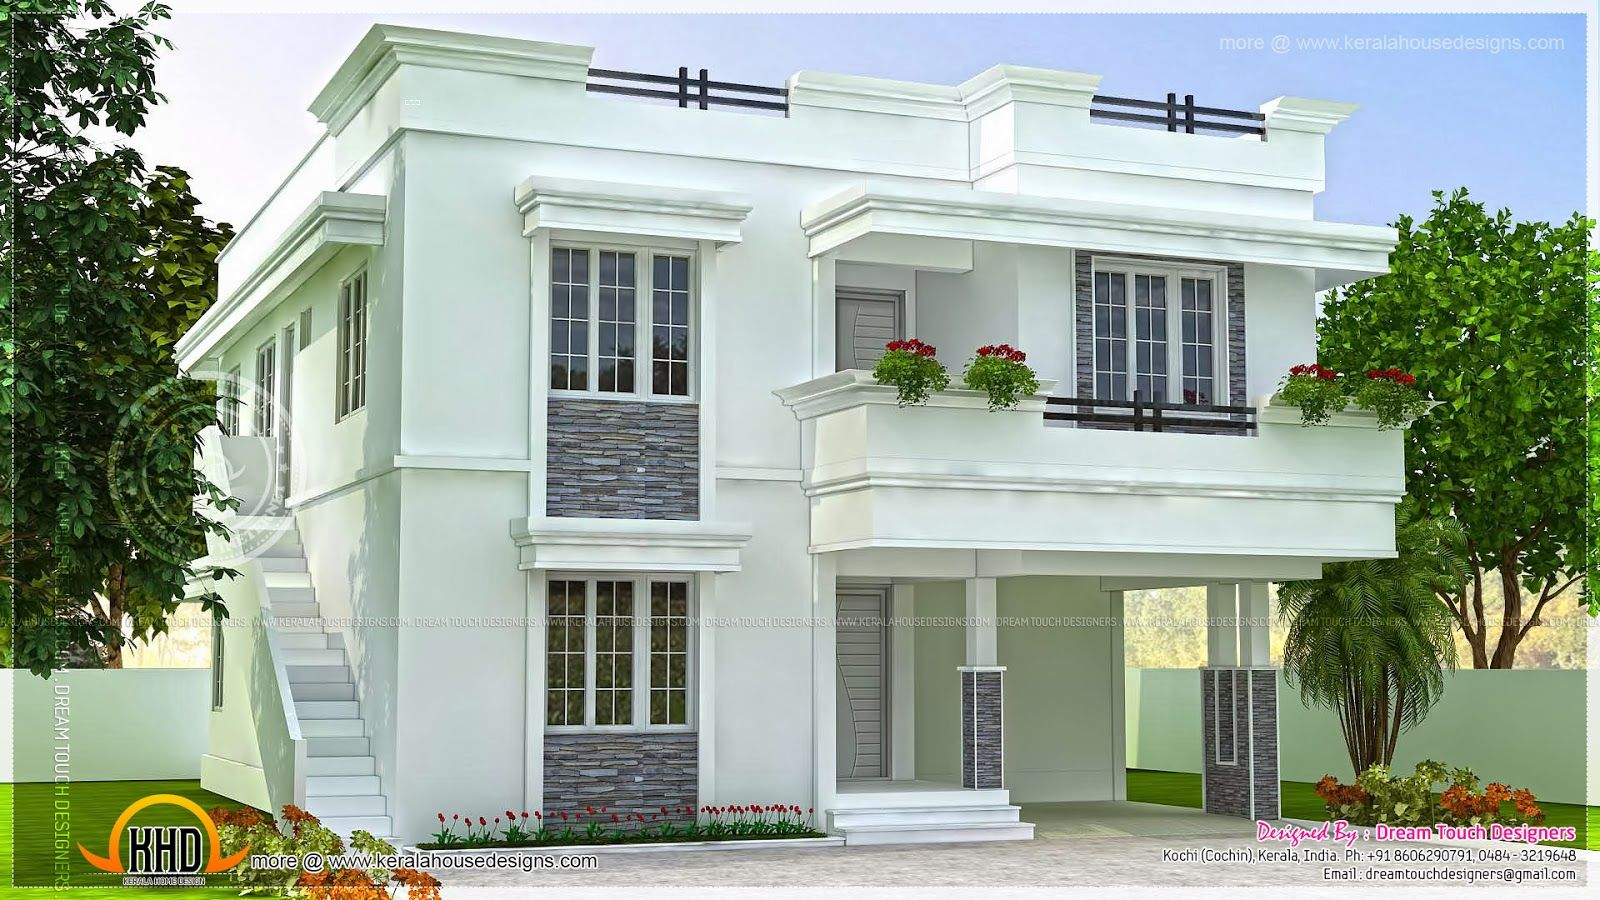 Modern beautiful home modern beautiful home design indian Small indian home designs photos